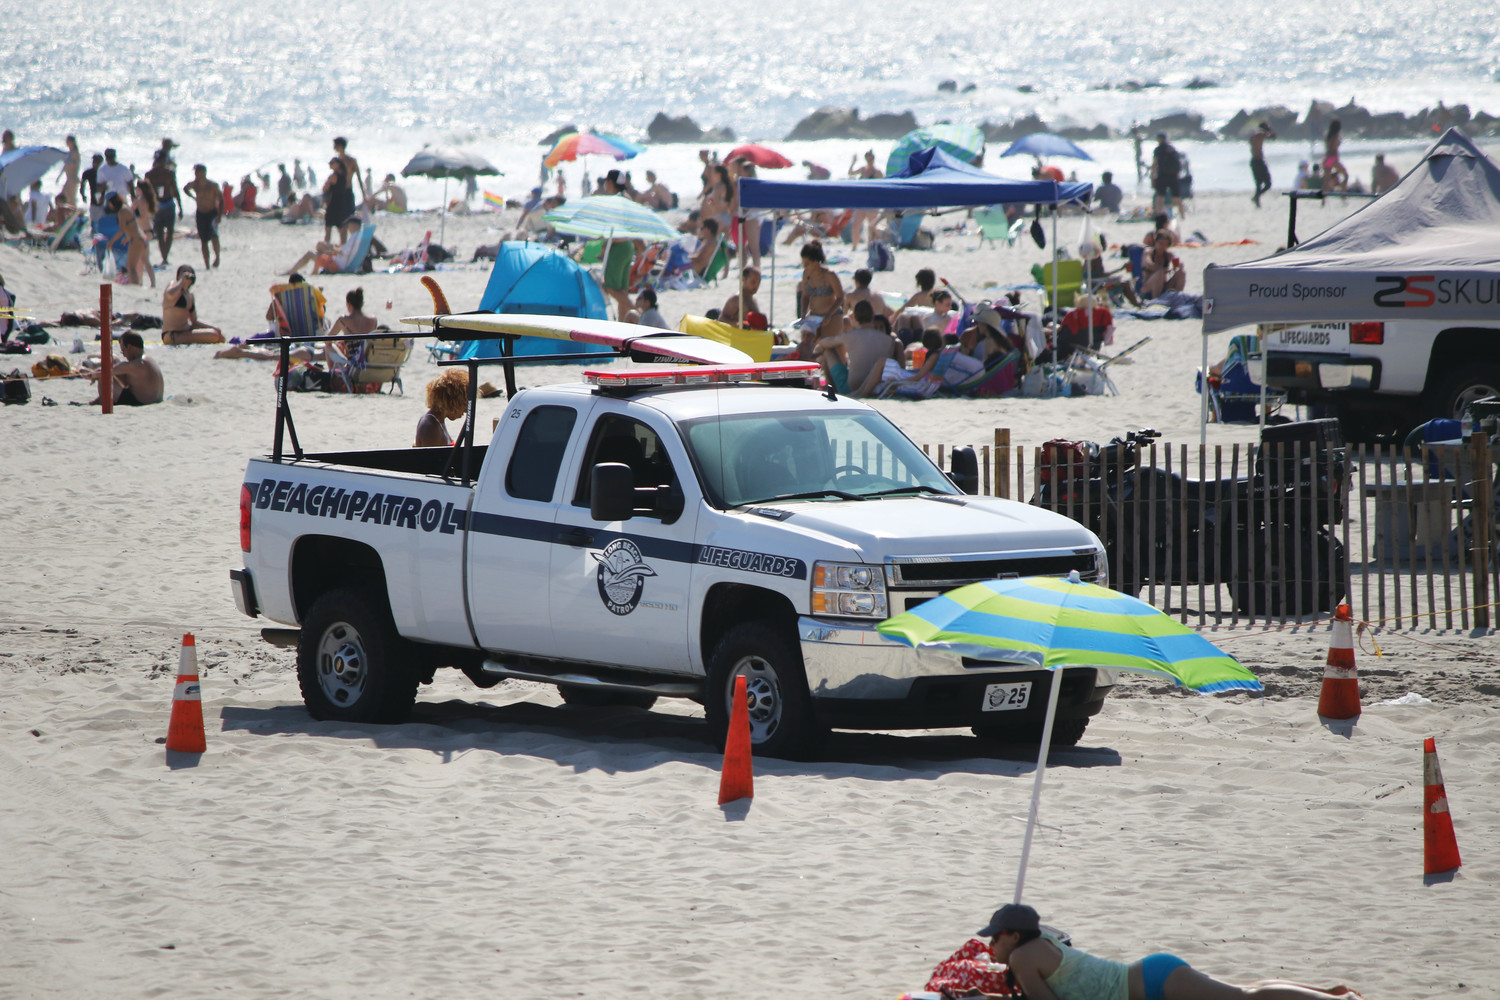 The city said that police SUVs, similar to this lifeguard truck, are no longer used to patrol the beach, and will only respond to 911 calls there.